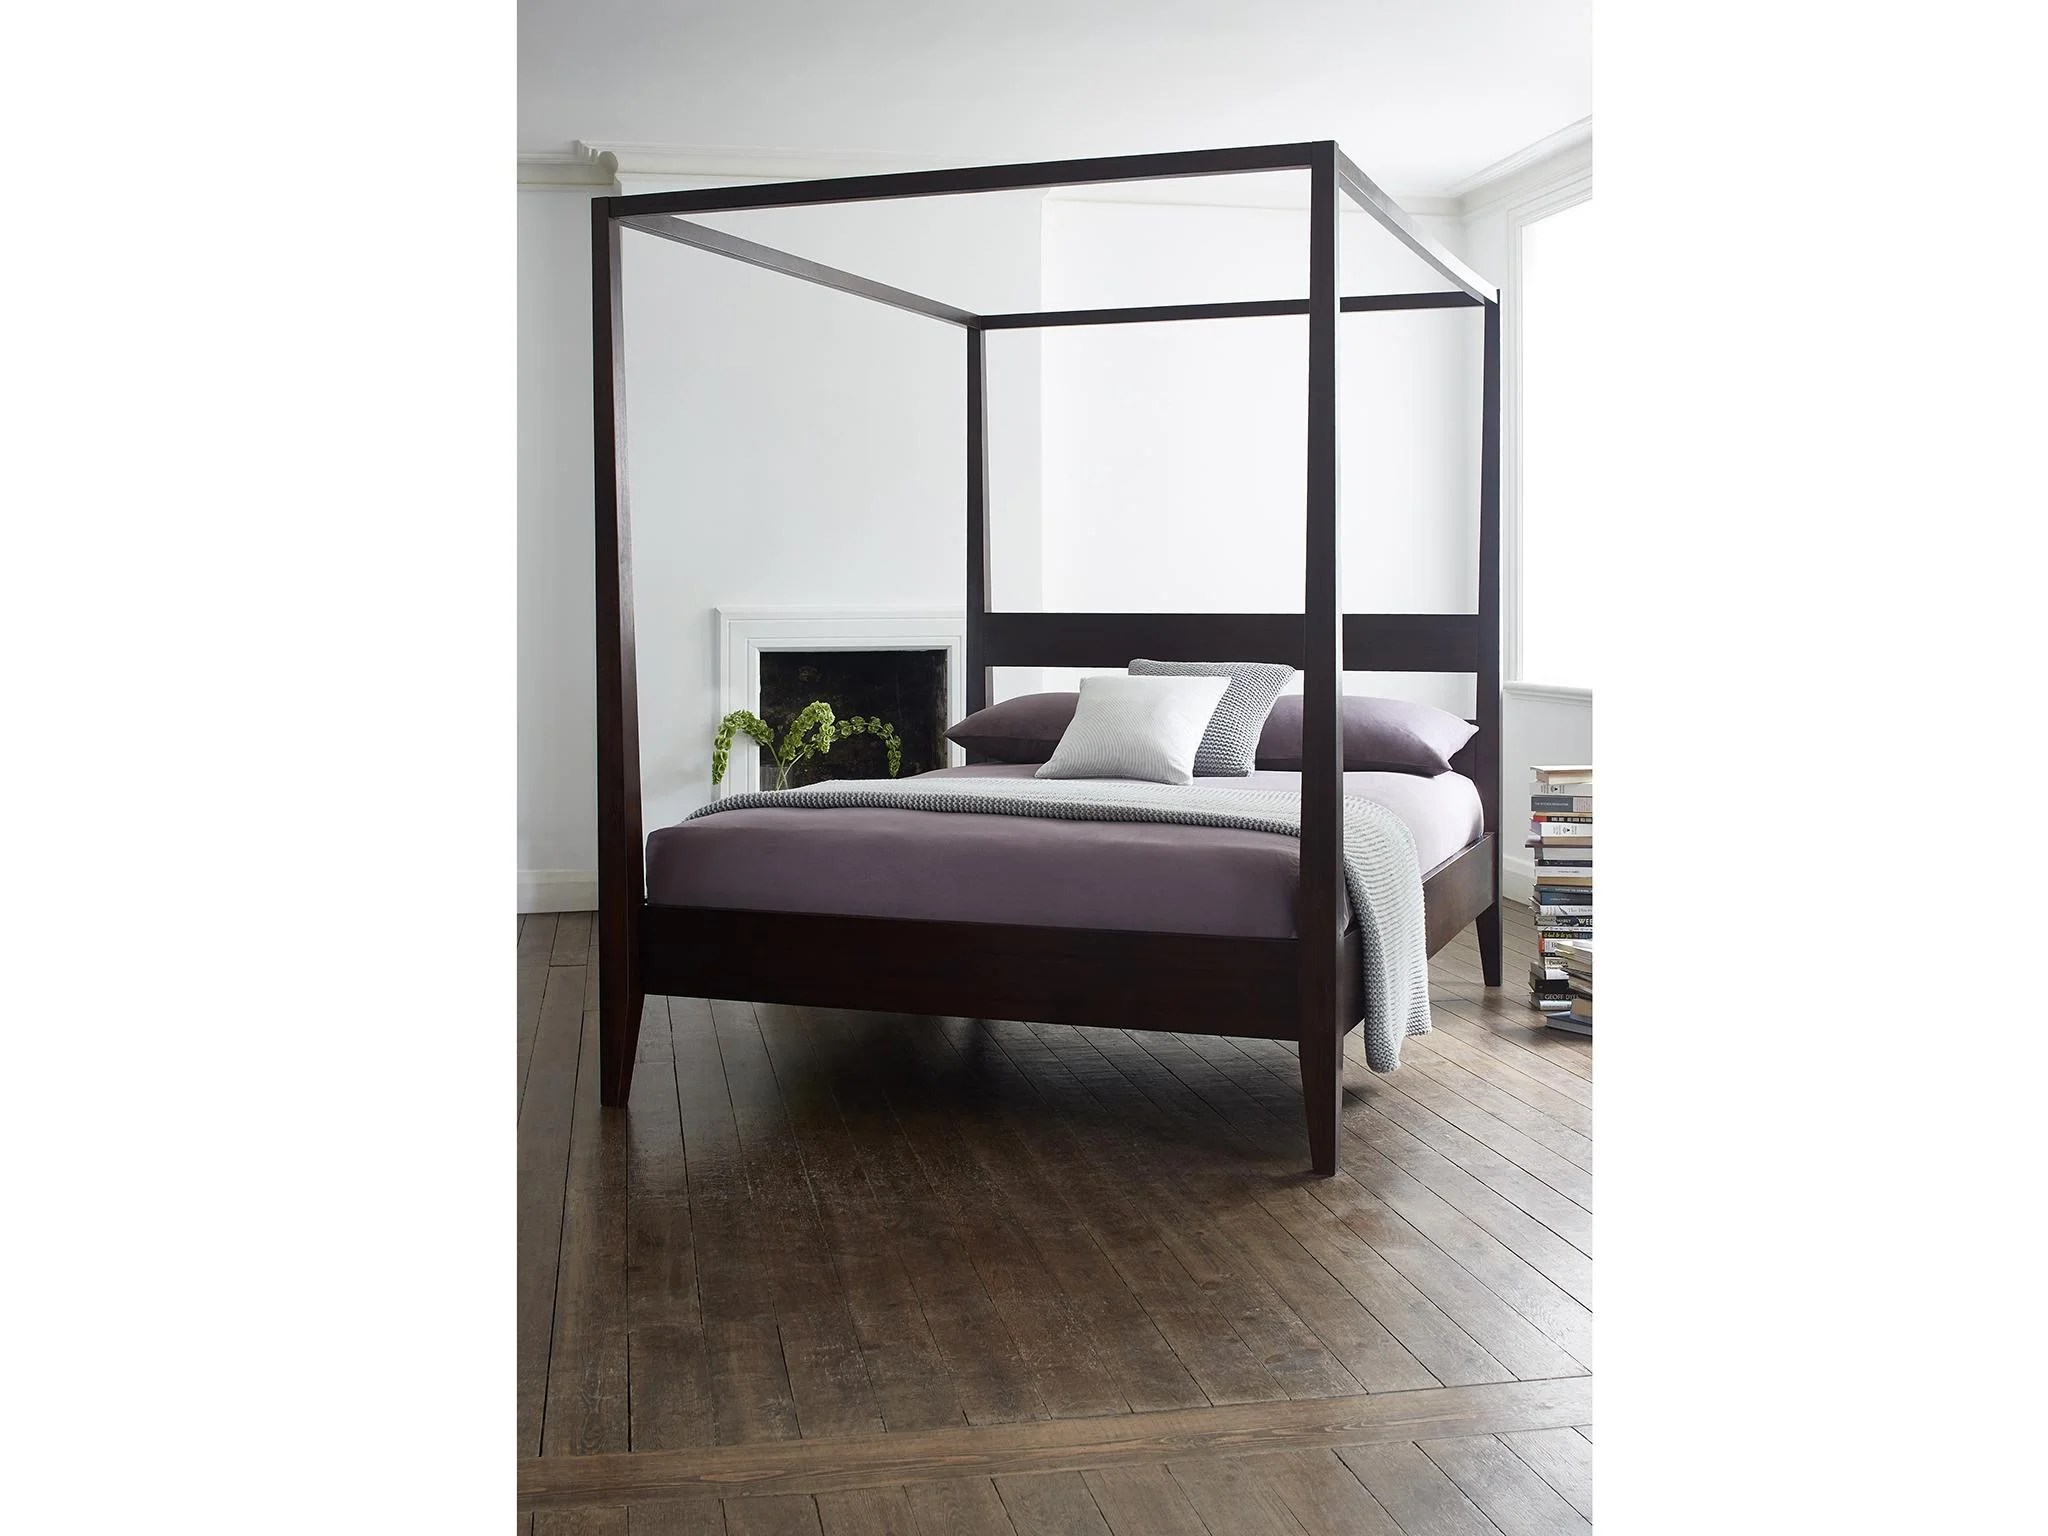 Best Four Poster Bed To Give Any Bedroom A Royal Touch The Independent